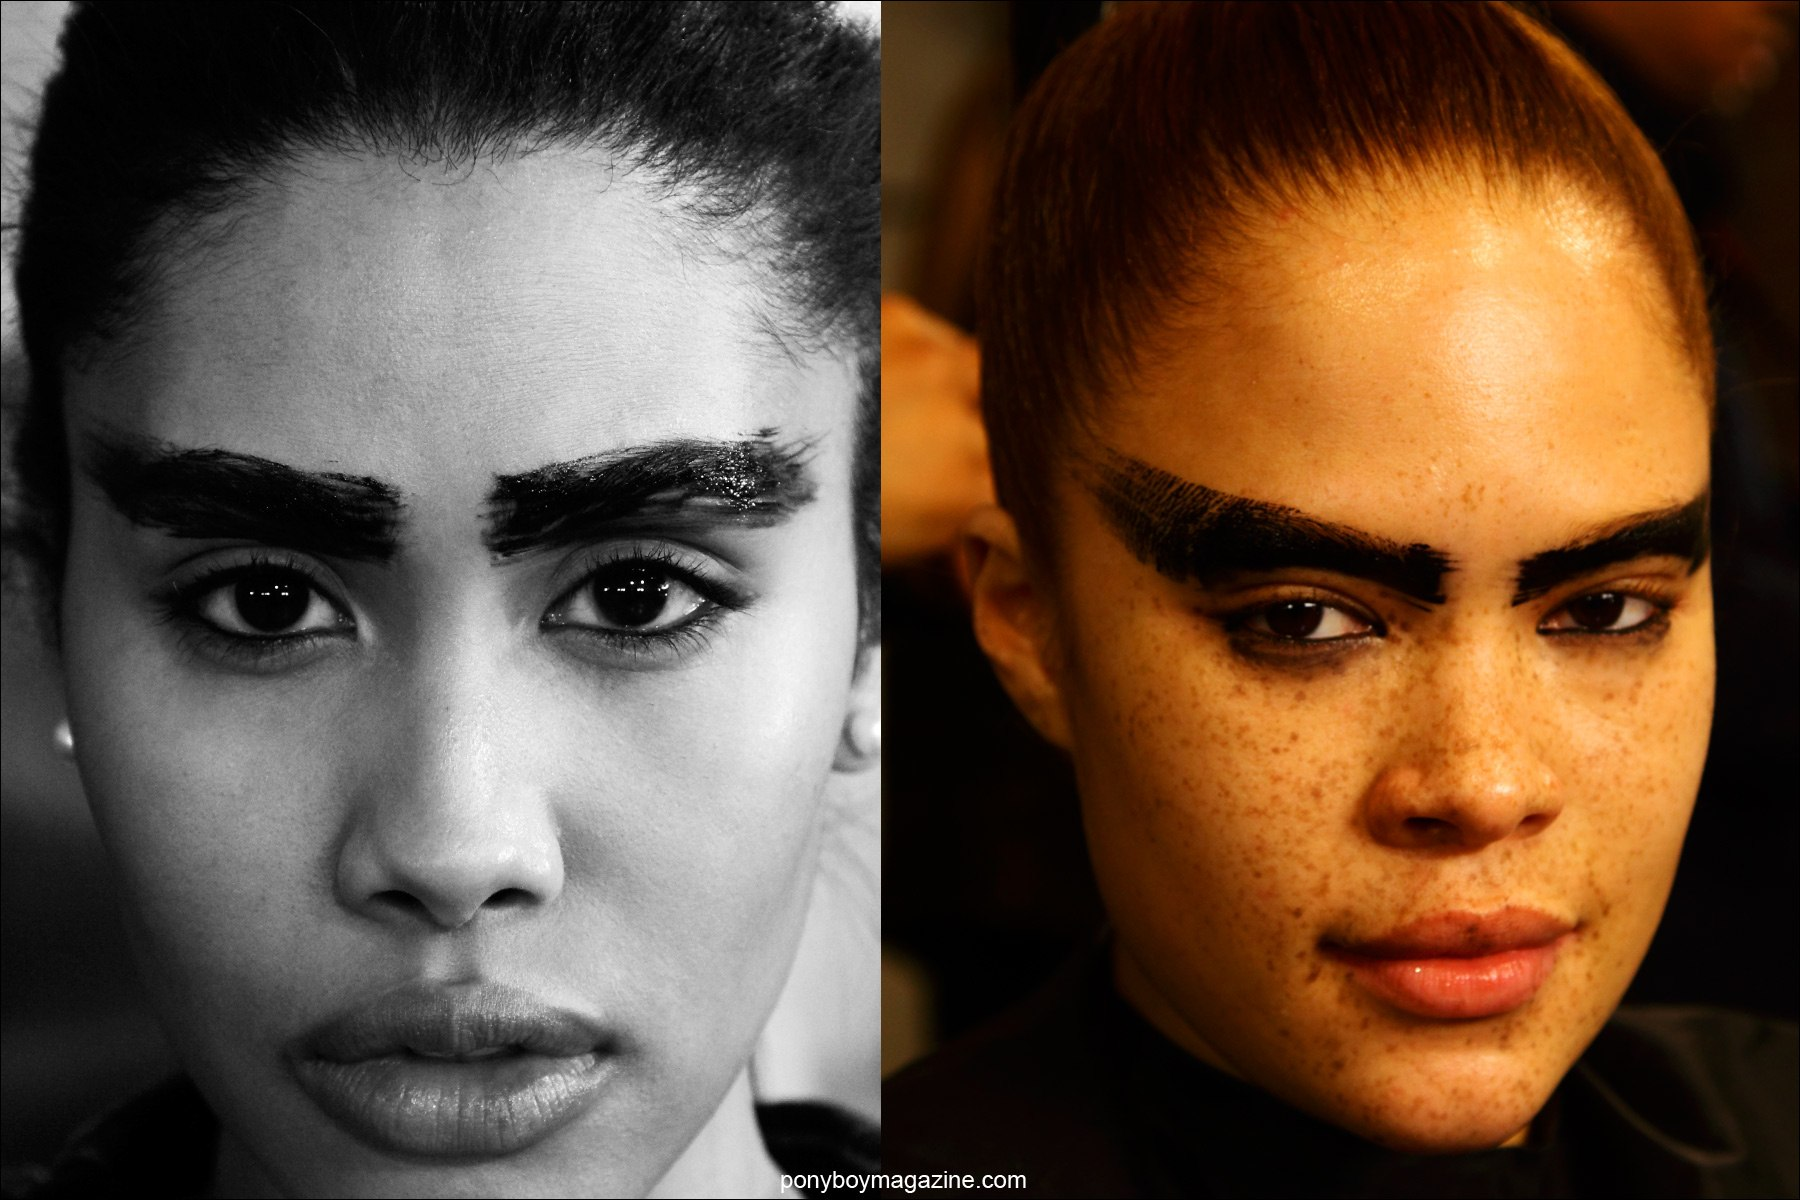 Extreme eyebrow looks at Chromat F/W 2015 collection, photographed backstage at Milk Studios by Alexander Thompson for Ponyboy magazine.